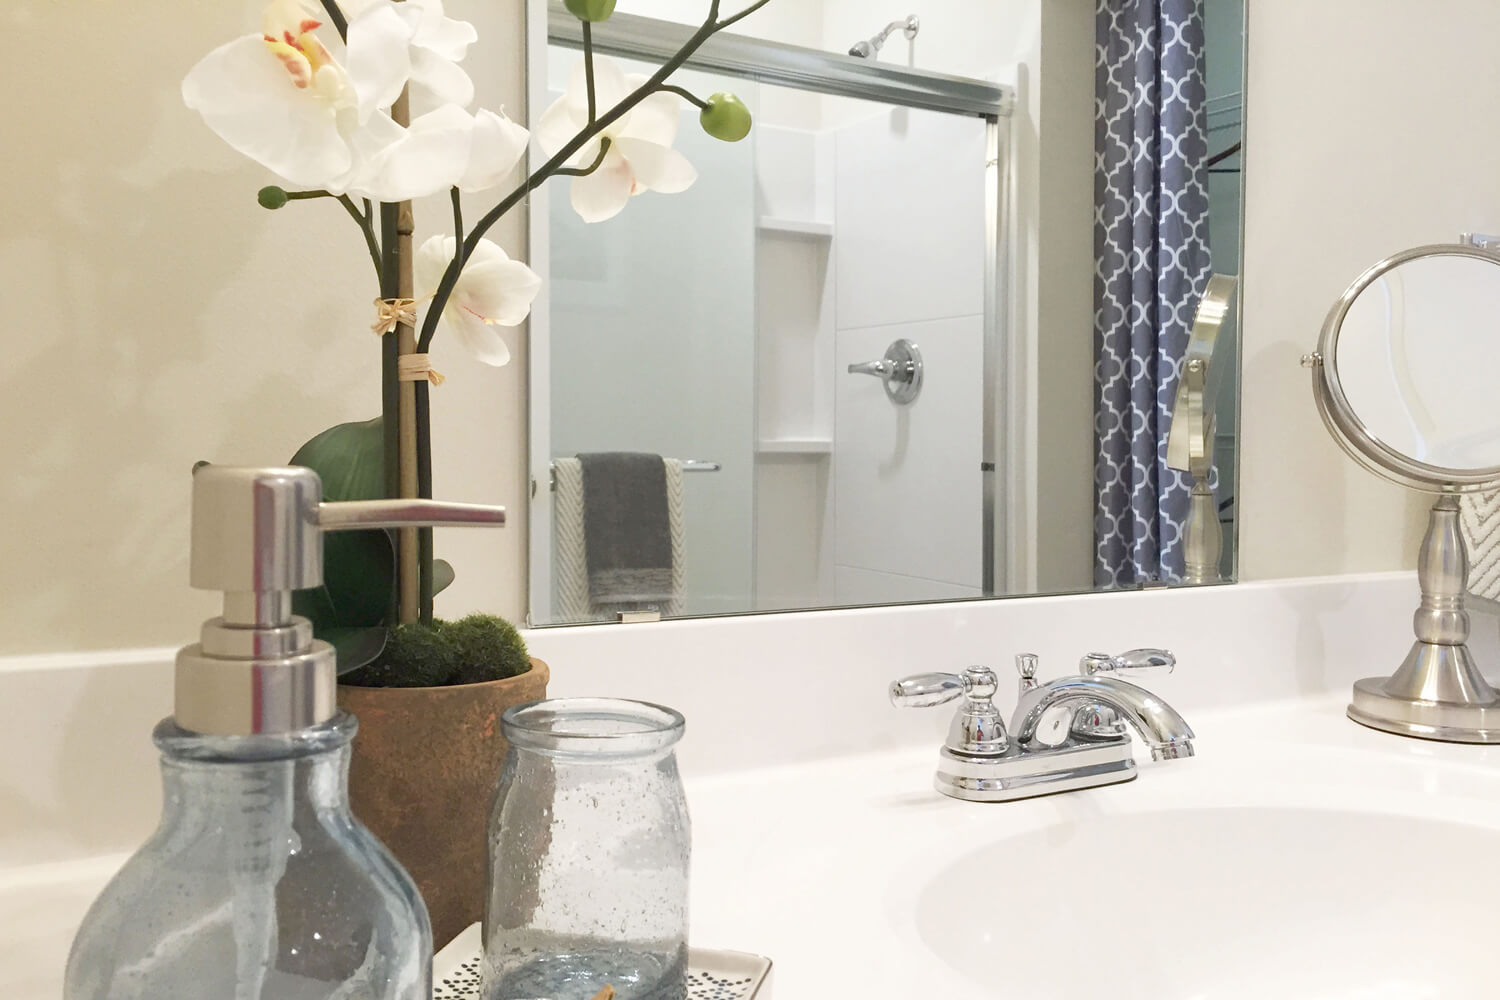 The Morgan Apartments Designed by Foshee Architecture - Master Bathroom Closeup